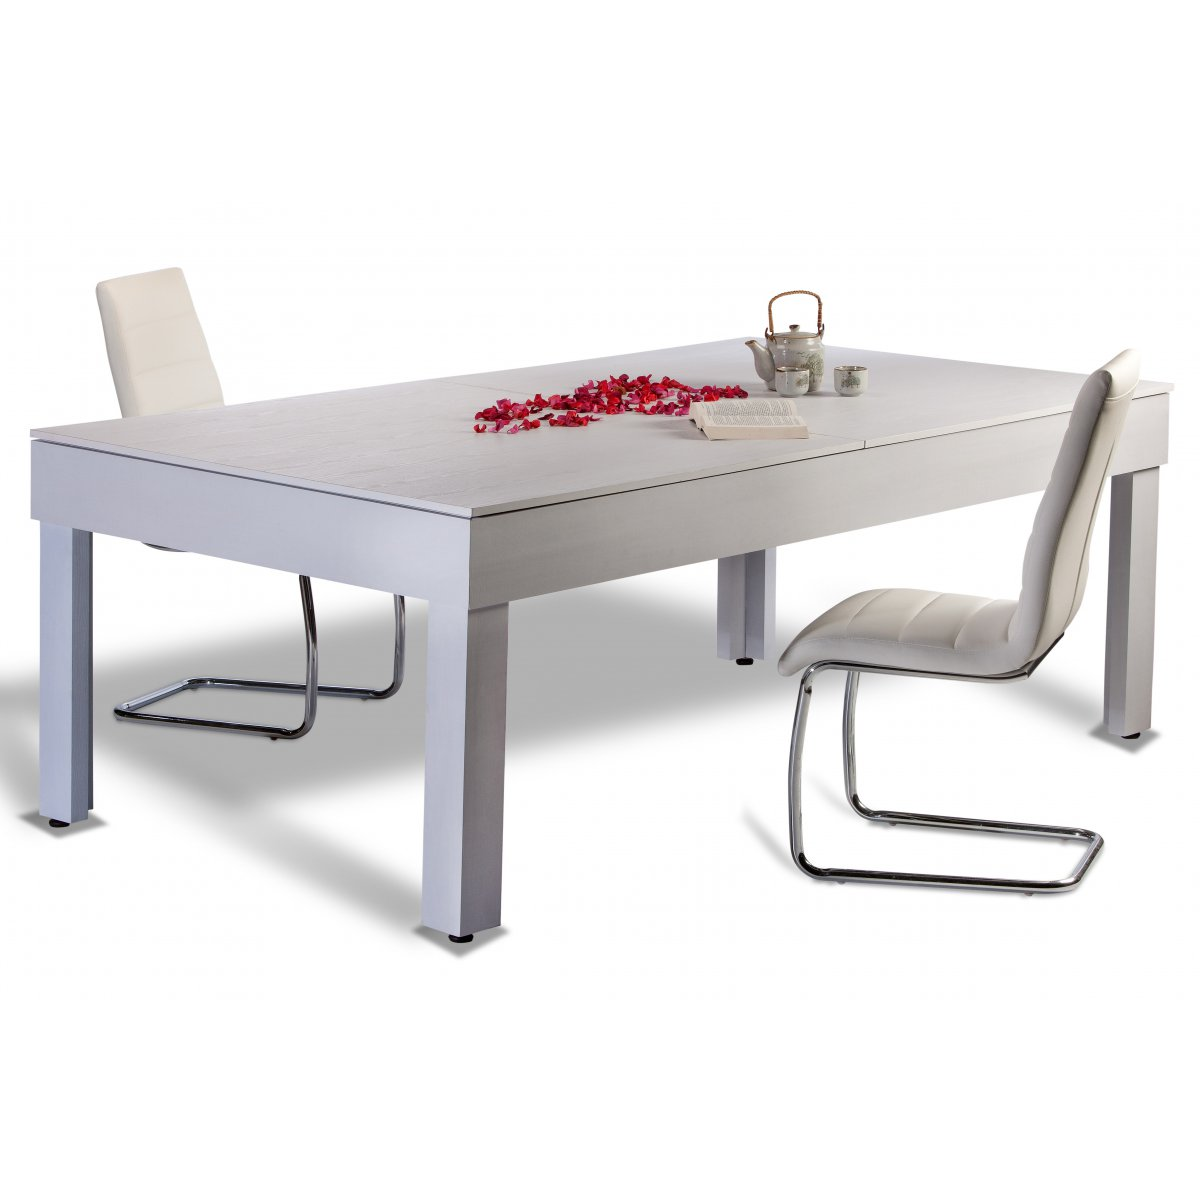 Billard transformable table manger - Table de billard transformable en table de salle a manger ...